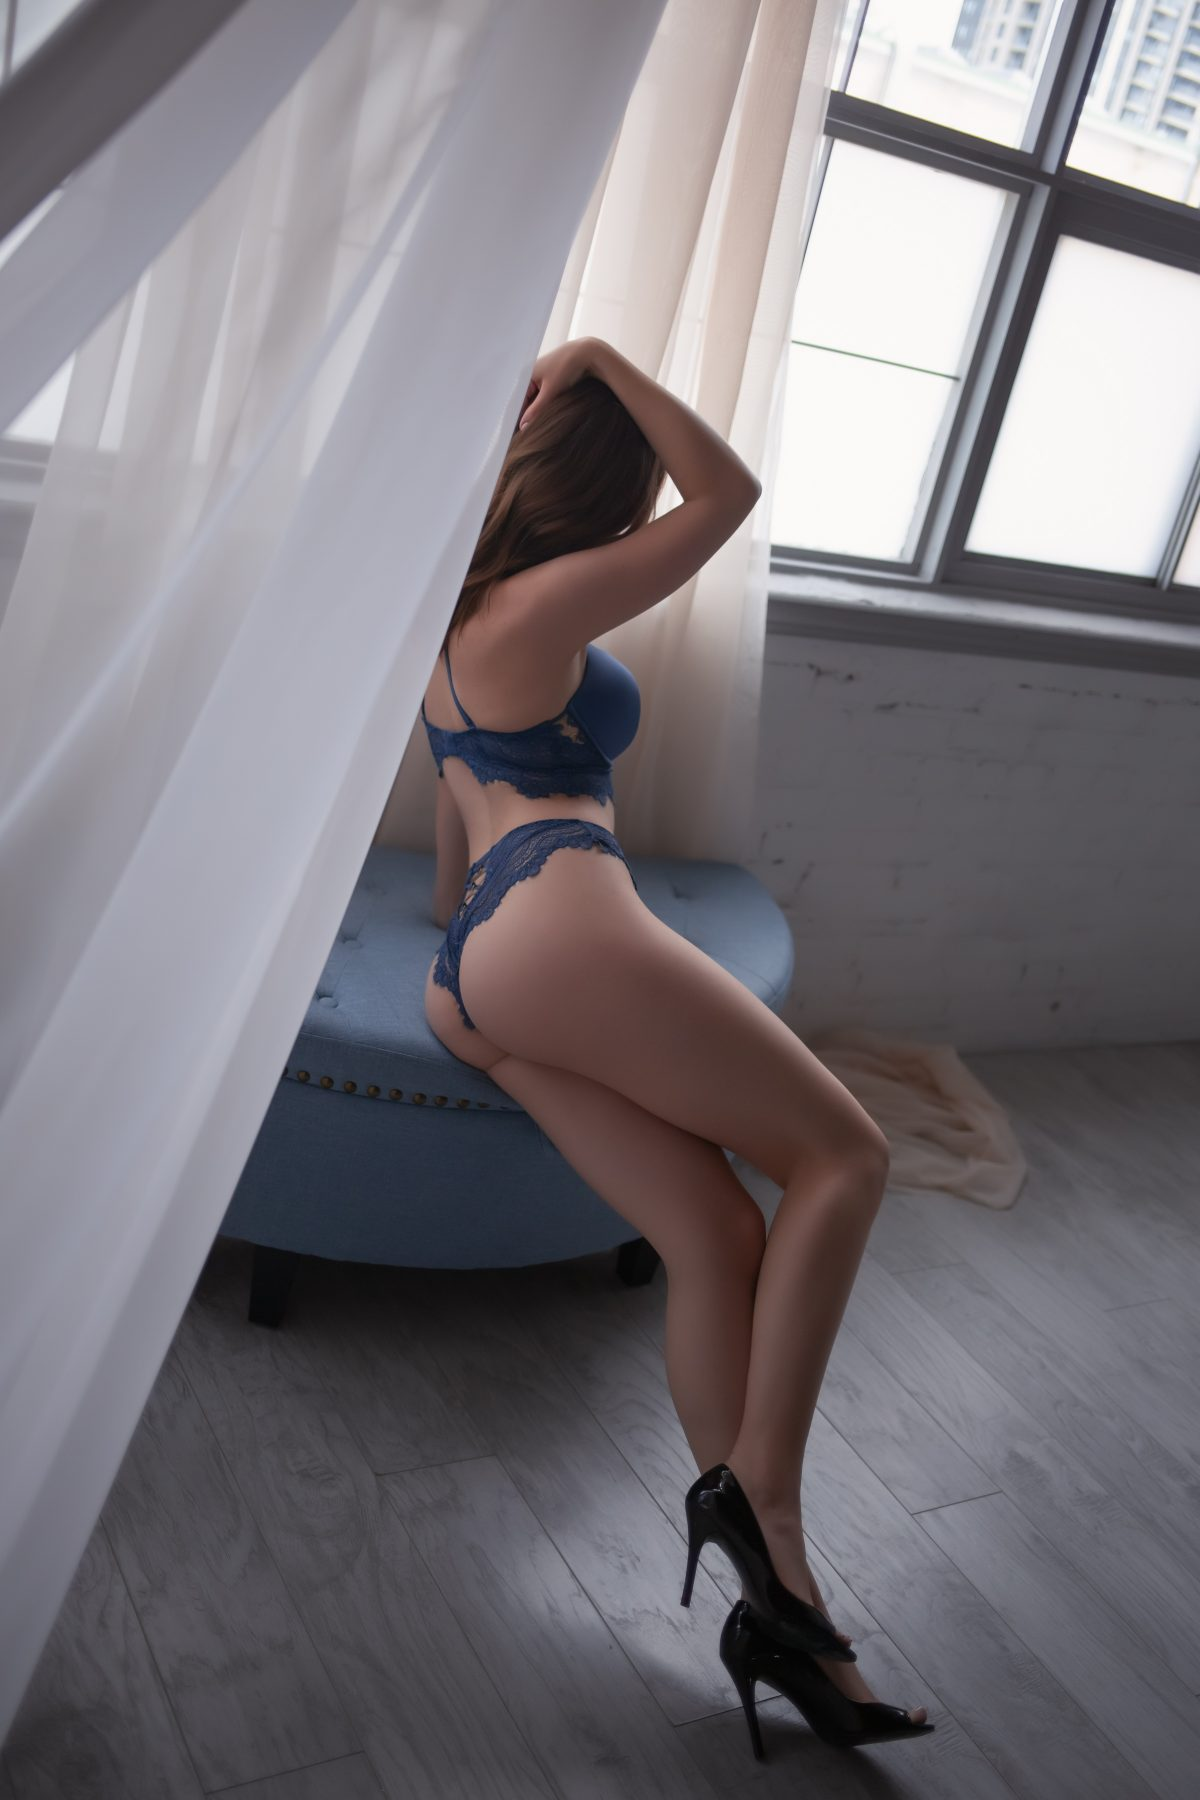 Toronto escorts companion upscale Madalyn Non-smoking Age Young Figure Slender Petite Breasts Natural Hair Blonde Brunette Ethnicity European Tattoos None Video